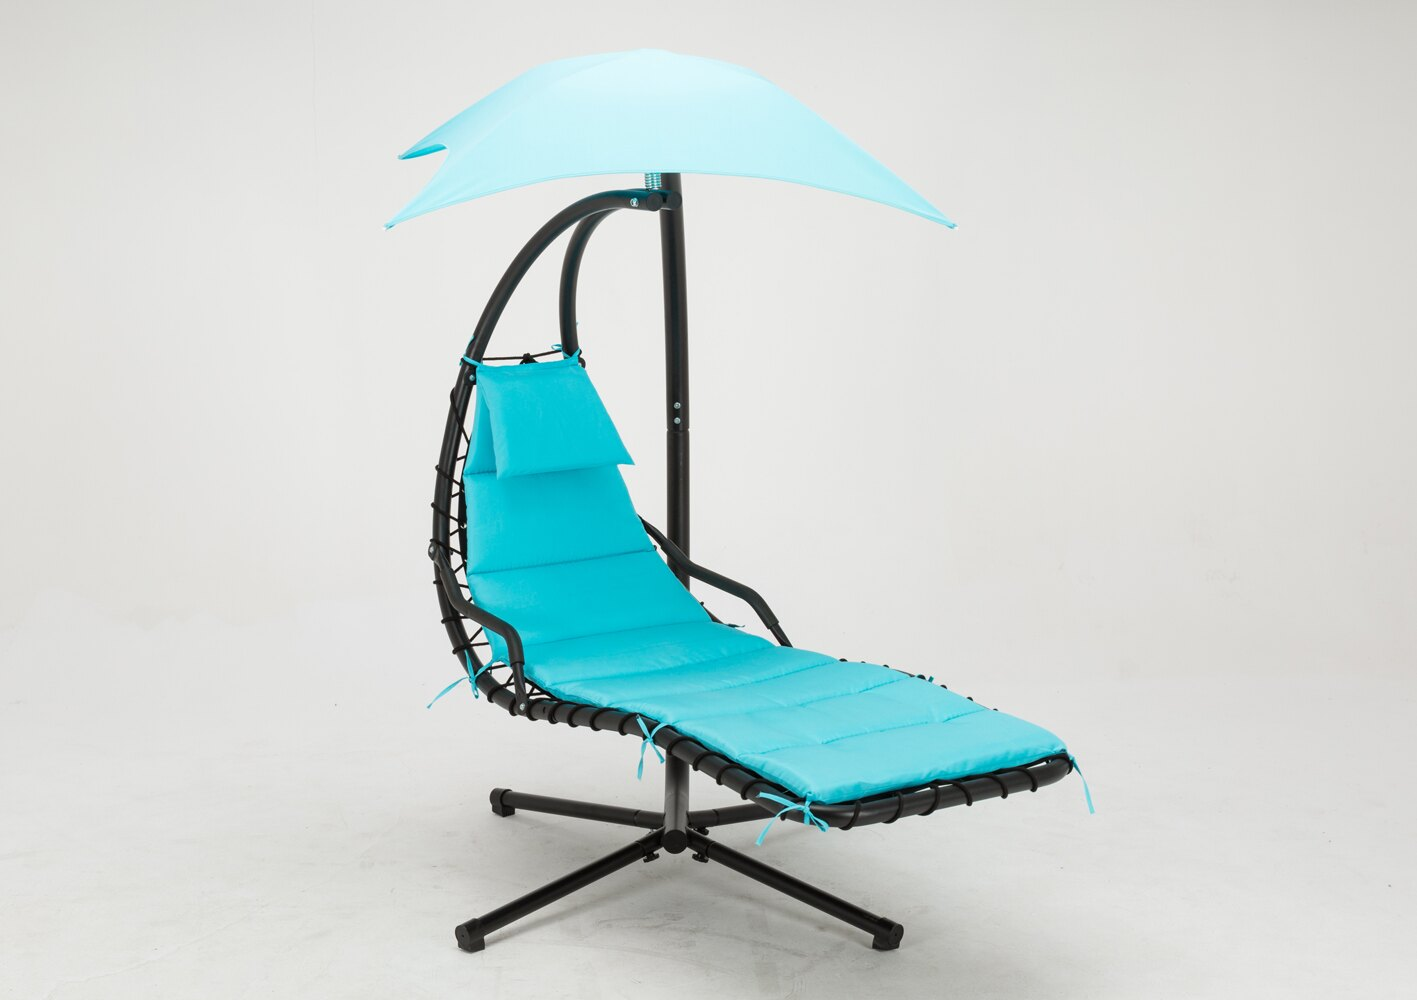 Mcombo Hanging Chaise Lounger Swing Hammock Chair with Canopy - Teal 1000 0